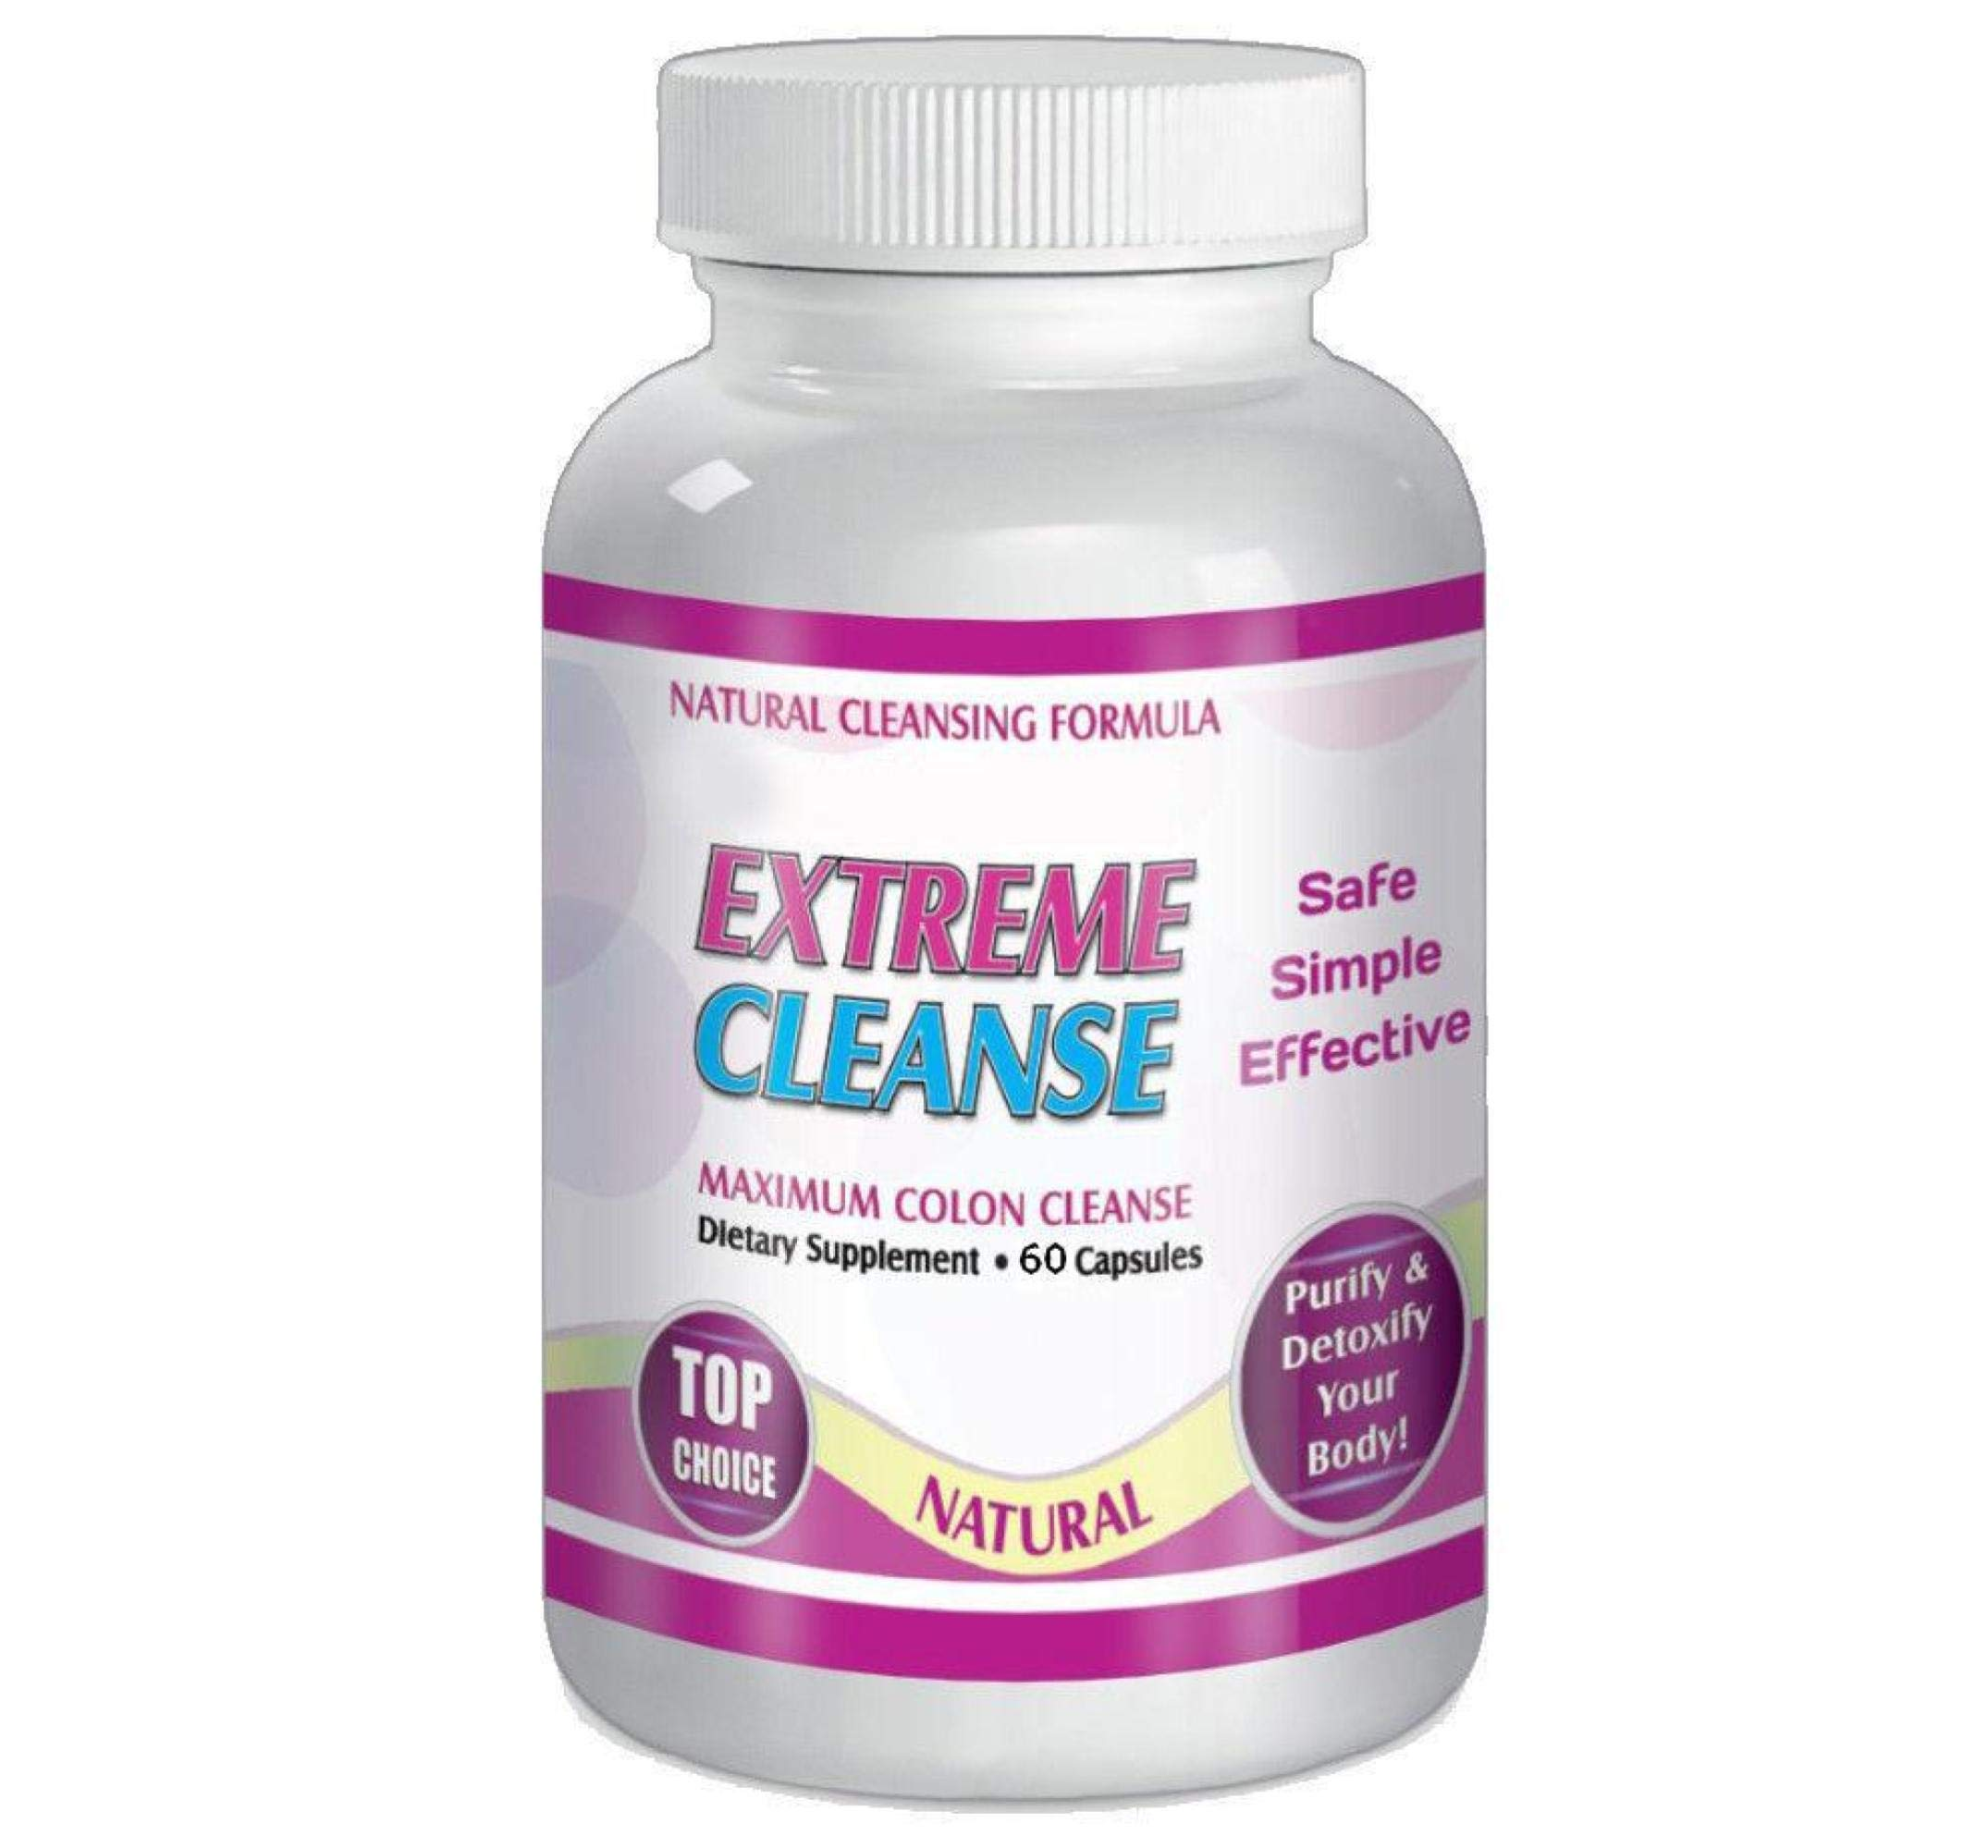 Extreme Cleanse Maximum Colon Detox Control Diet Lose Weight System